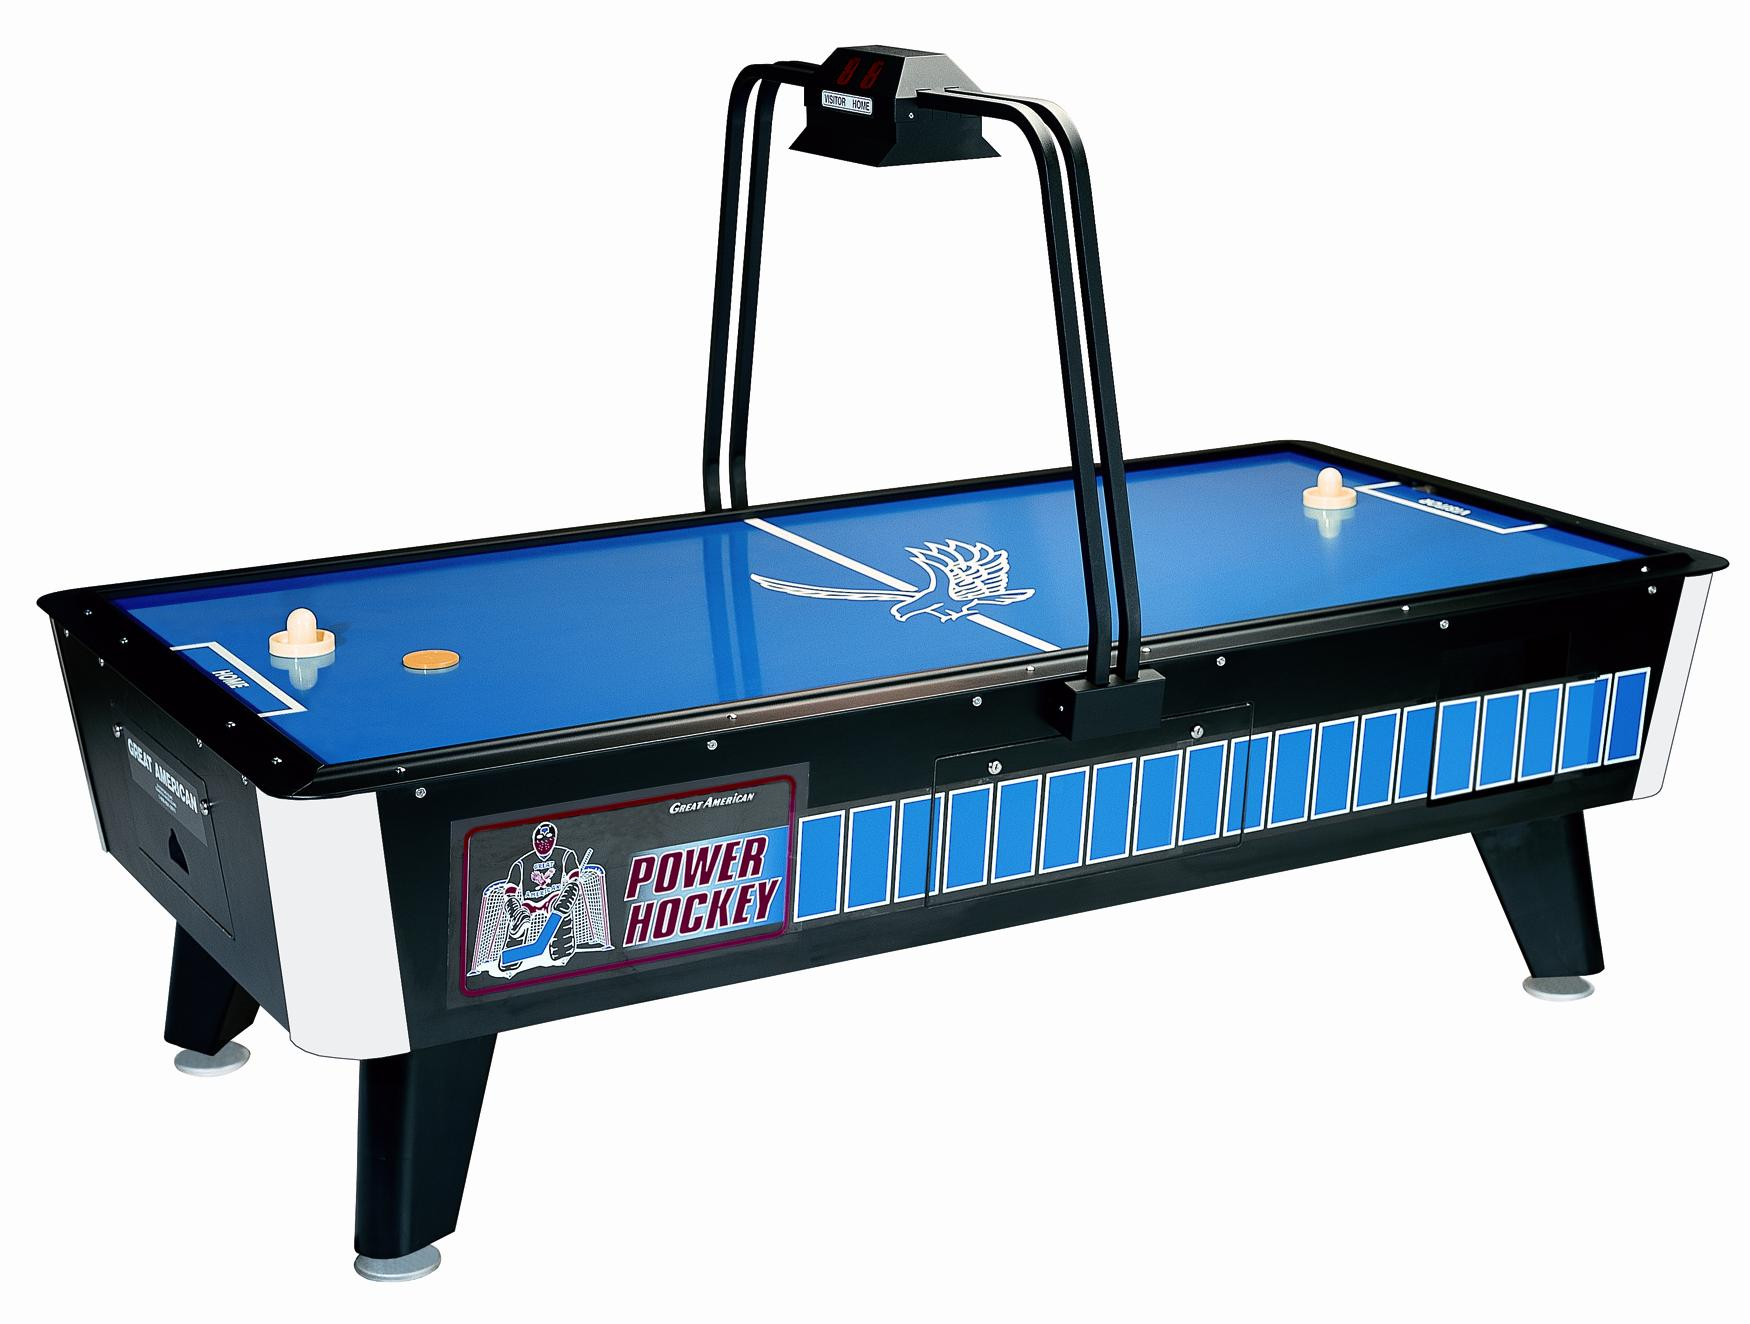 Air hockey table troubleshooting guidegame tables and more power hockey table with overhead scoreboard greentooth Images